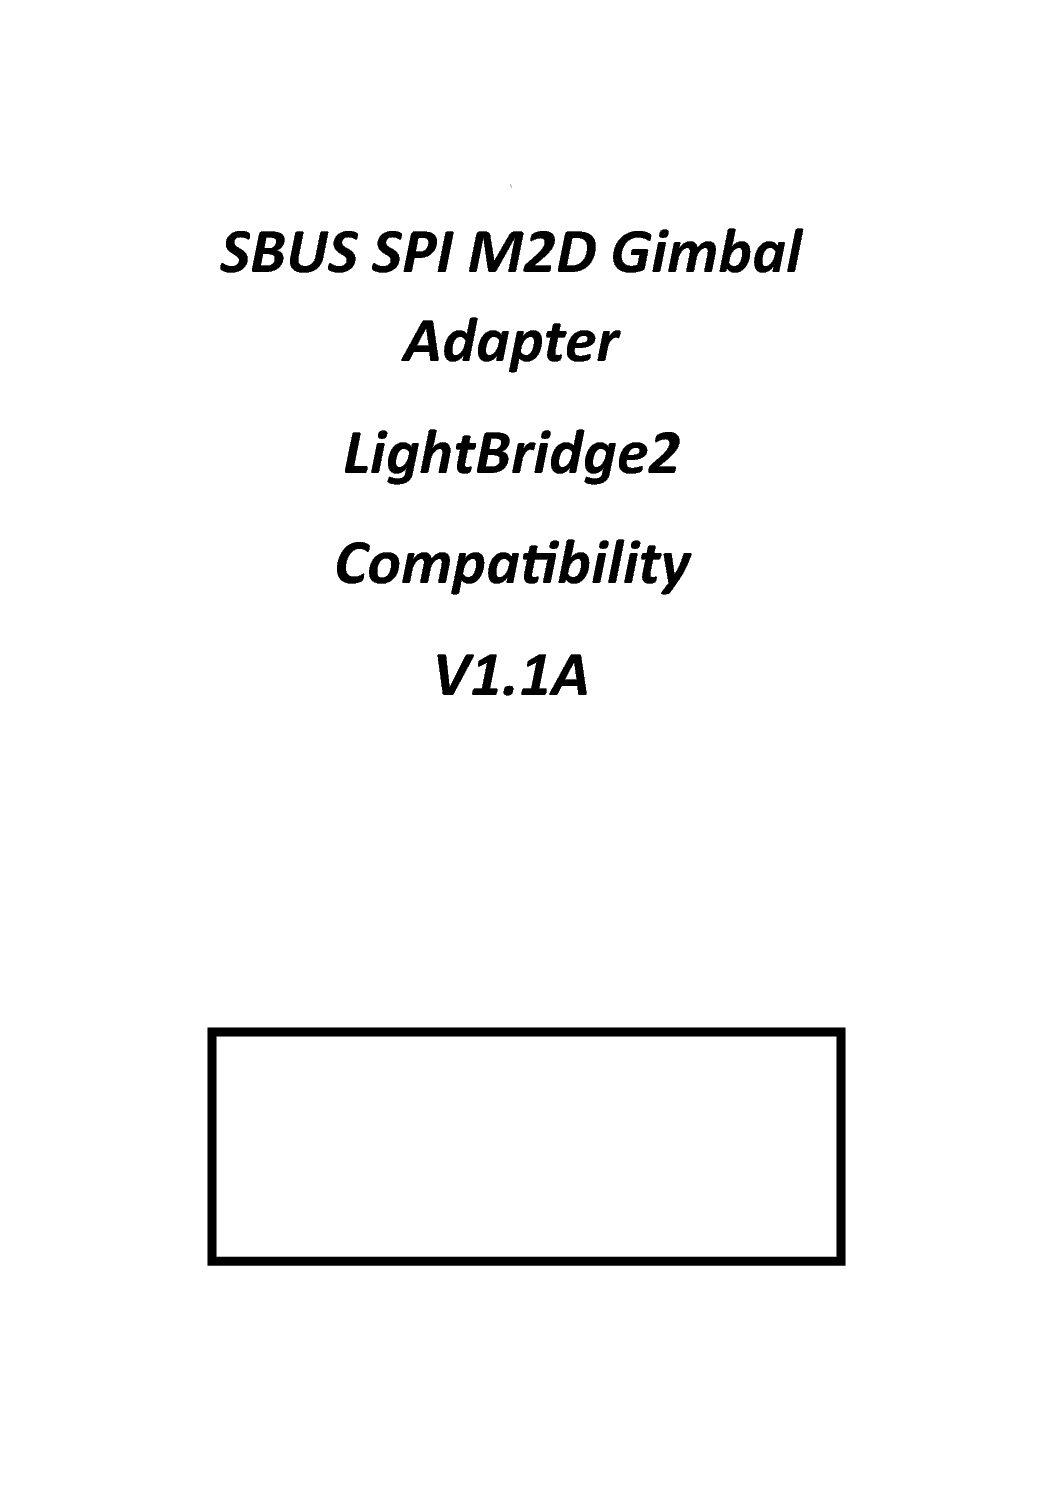 M2d Eoir Gimbal Flir Thermal Hd Sbus Lightbridge